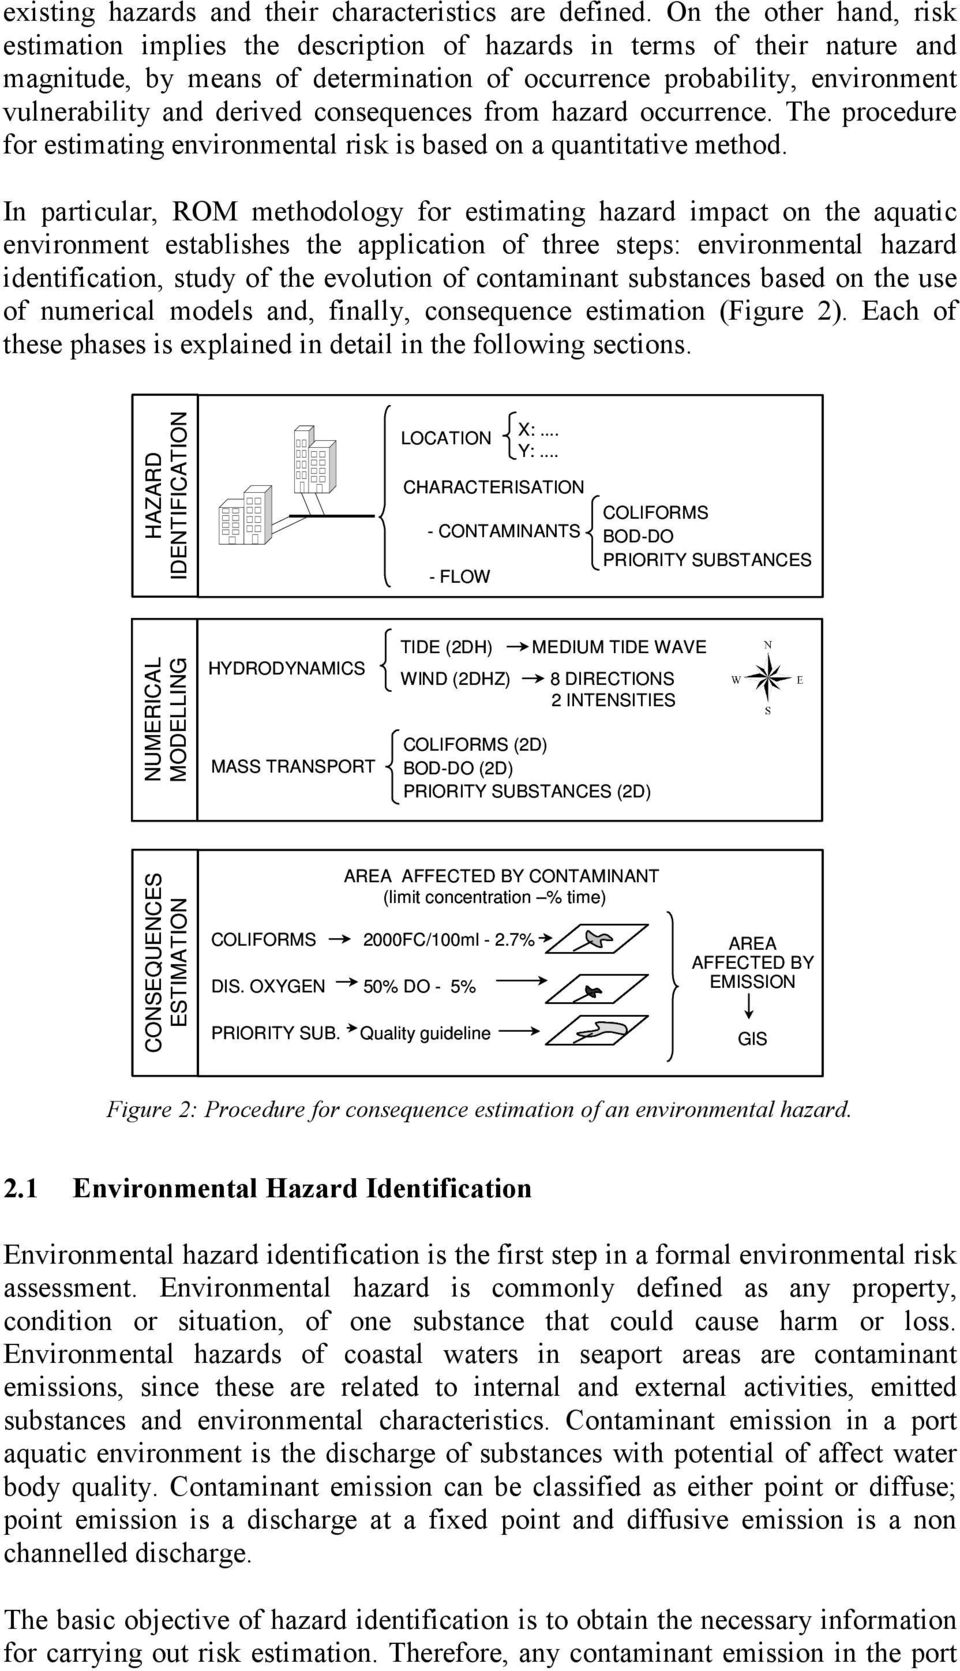 derived consequences from hazard occurrence. The procedure for estimating environmental risk is based on a quantitative method.